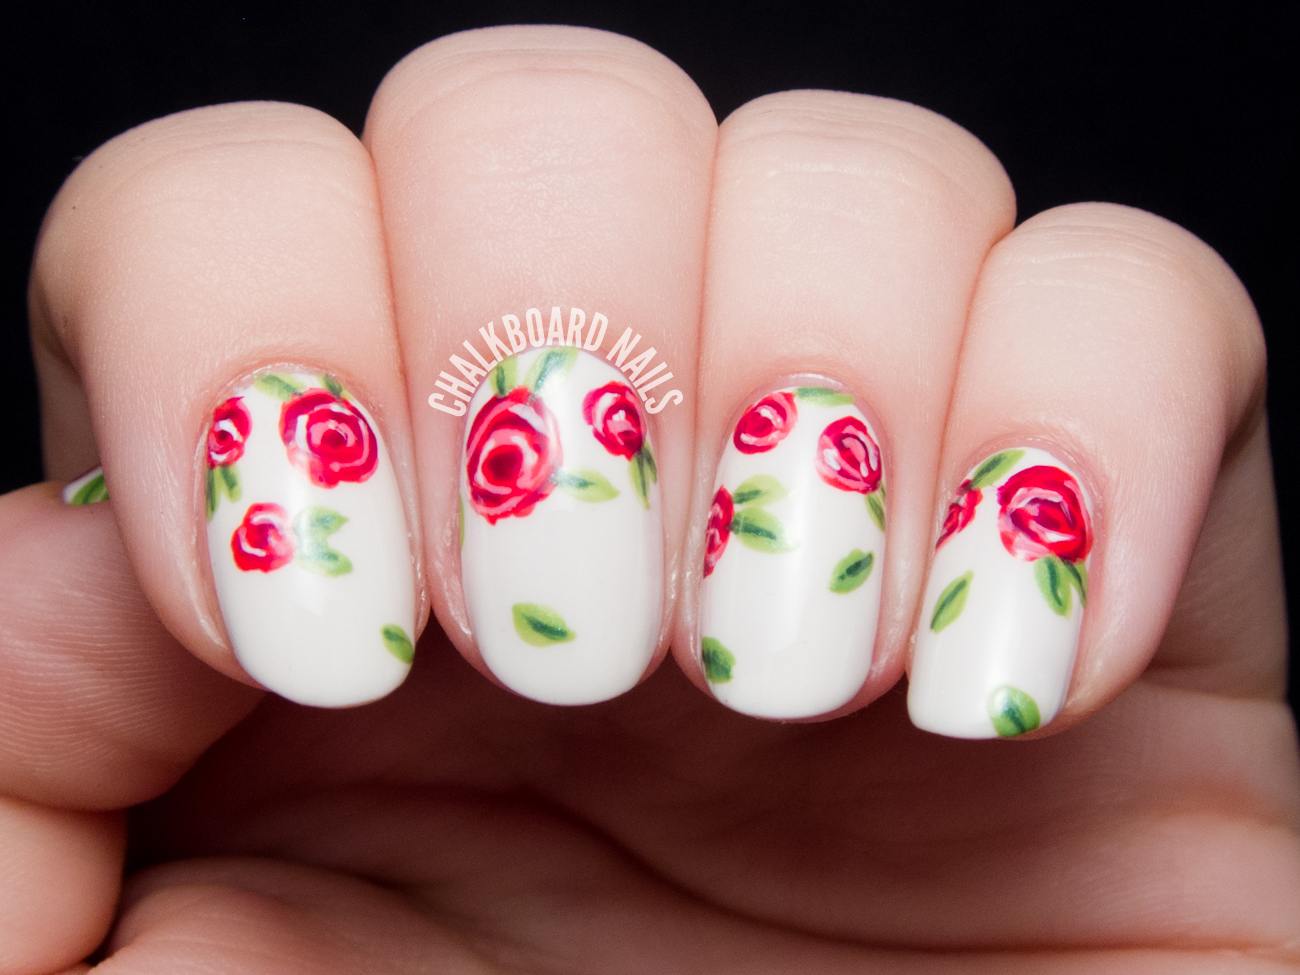 Sweet red rose nail art by @chalkboardnails